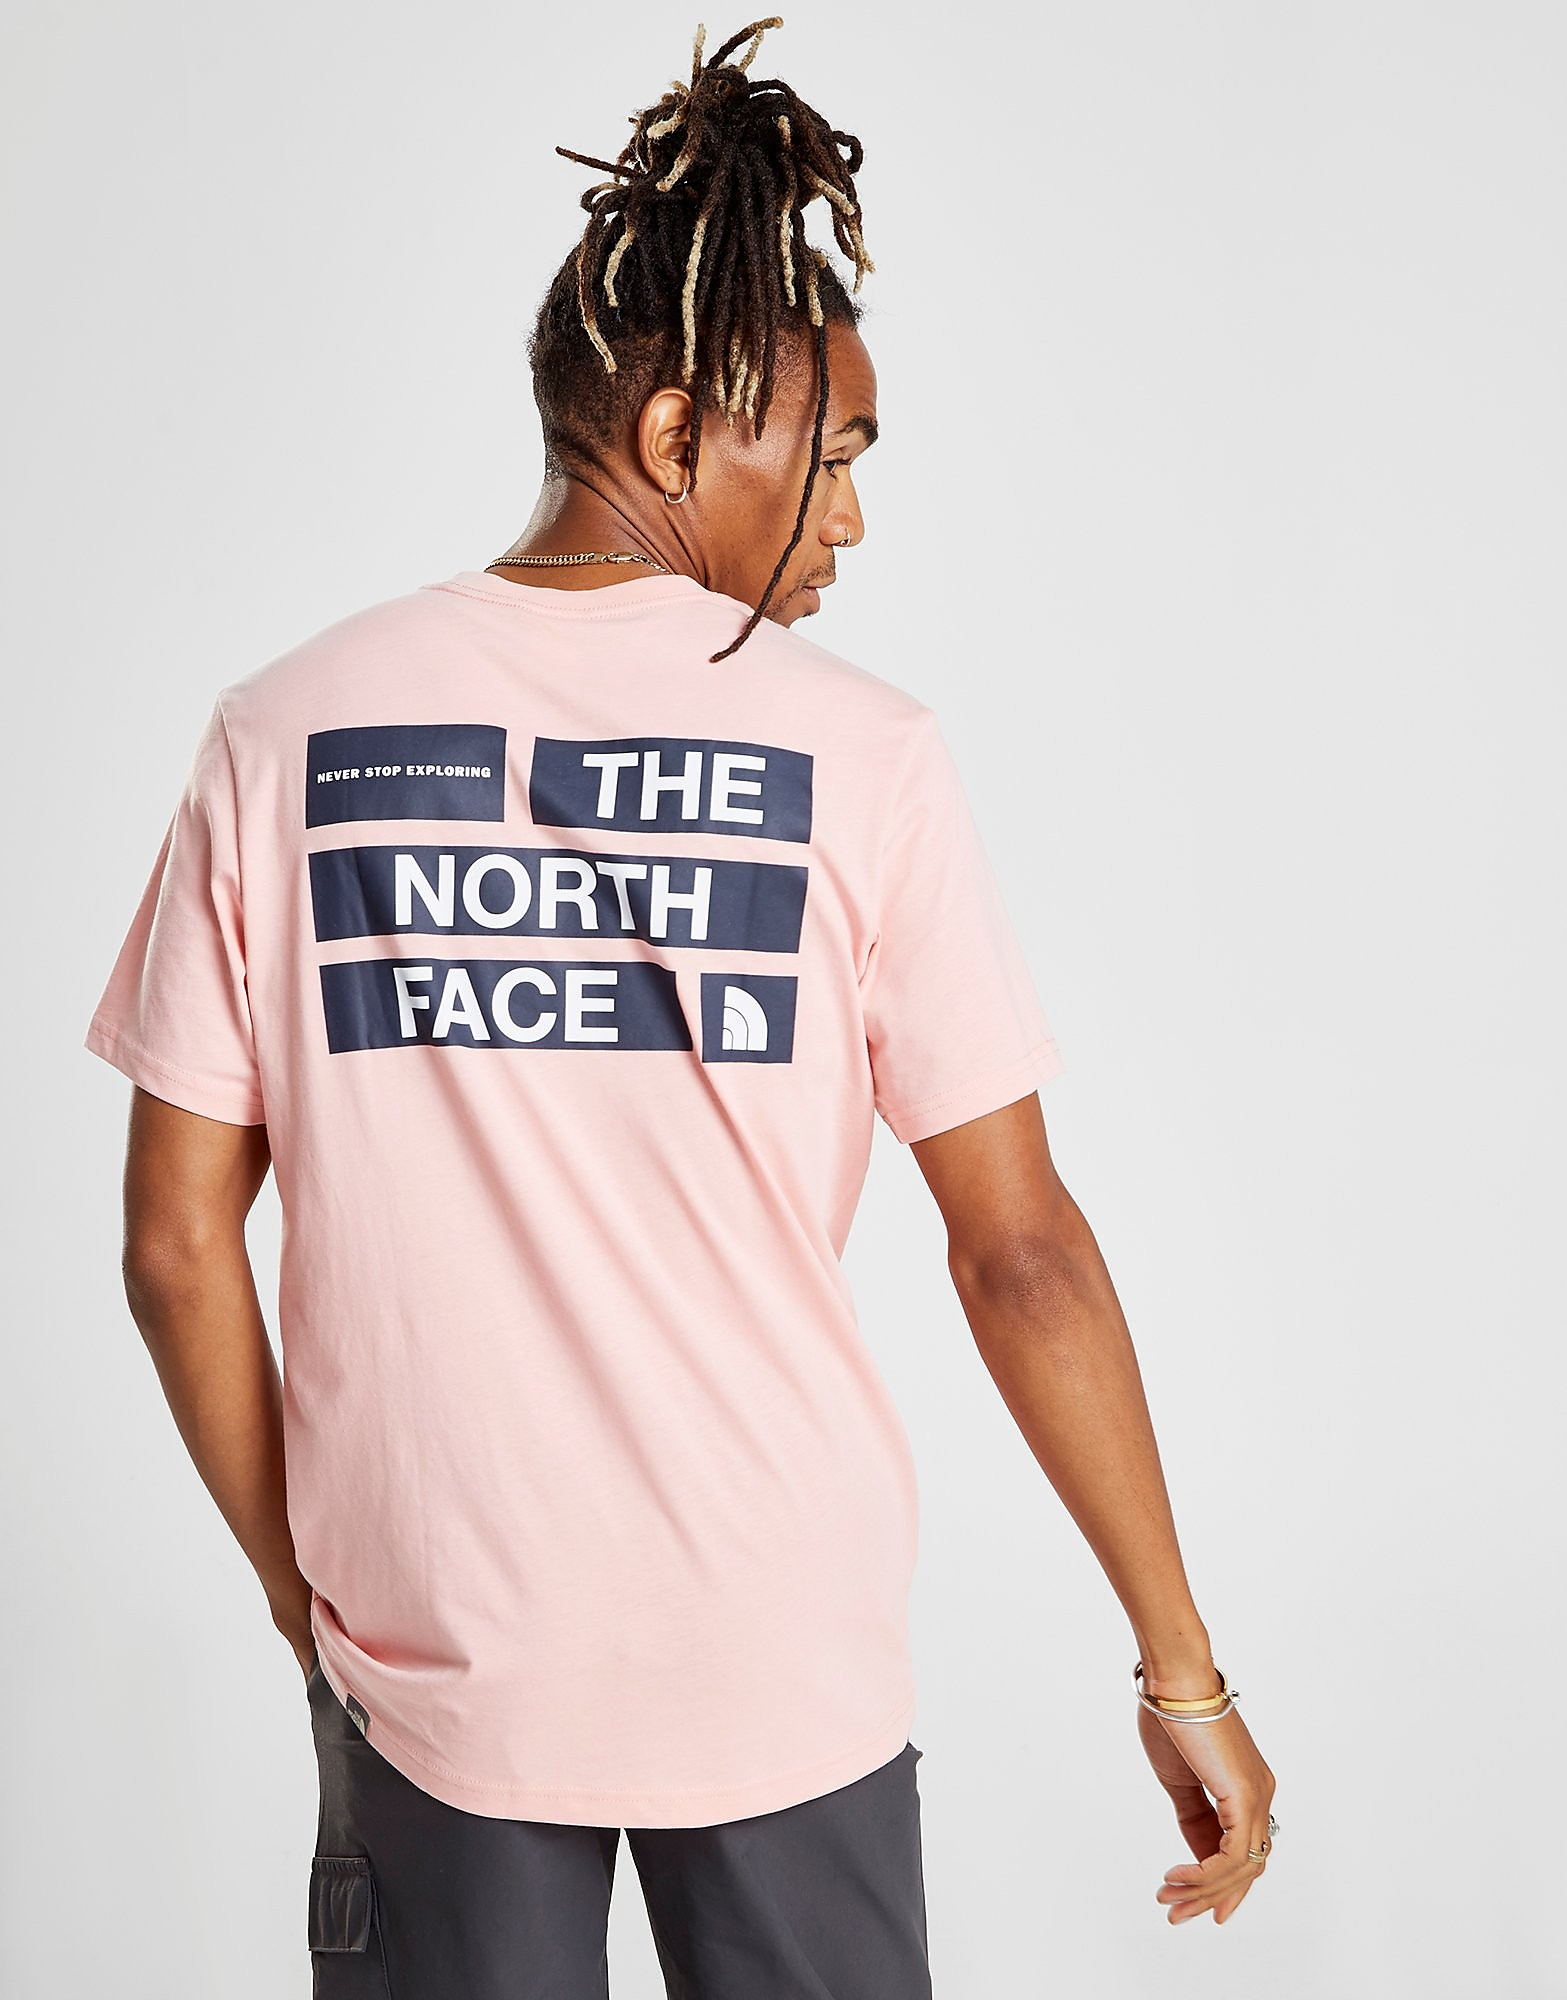 The North Face camiseta Newbox